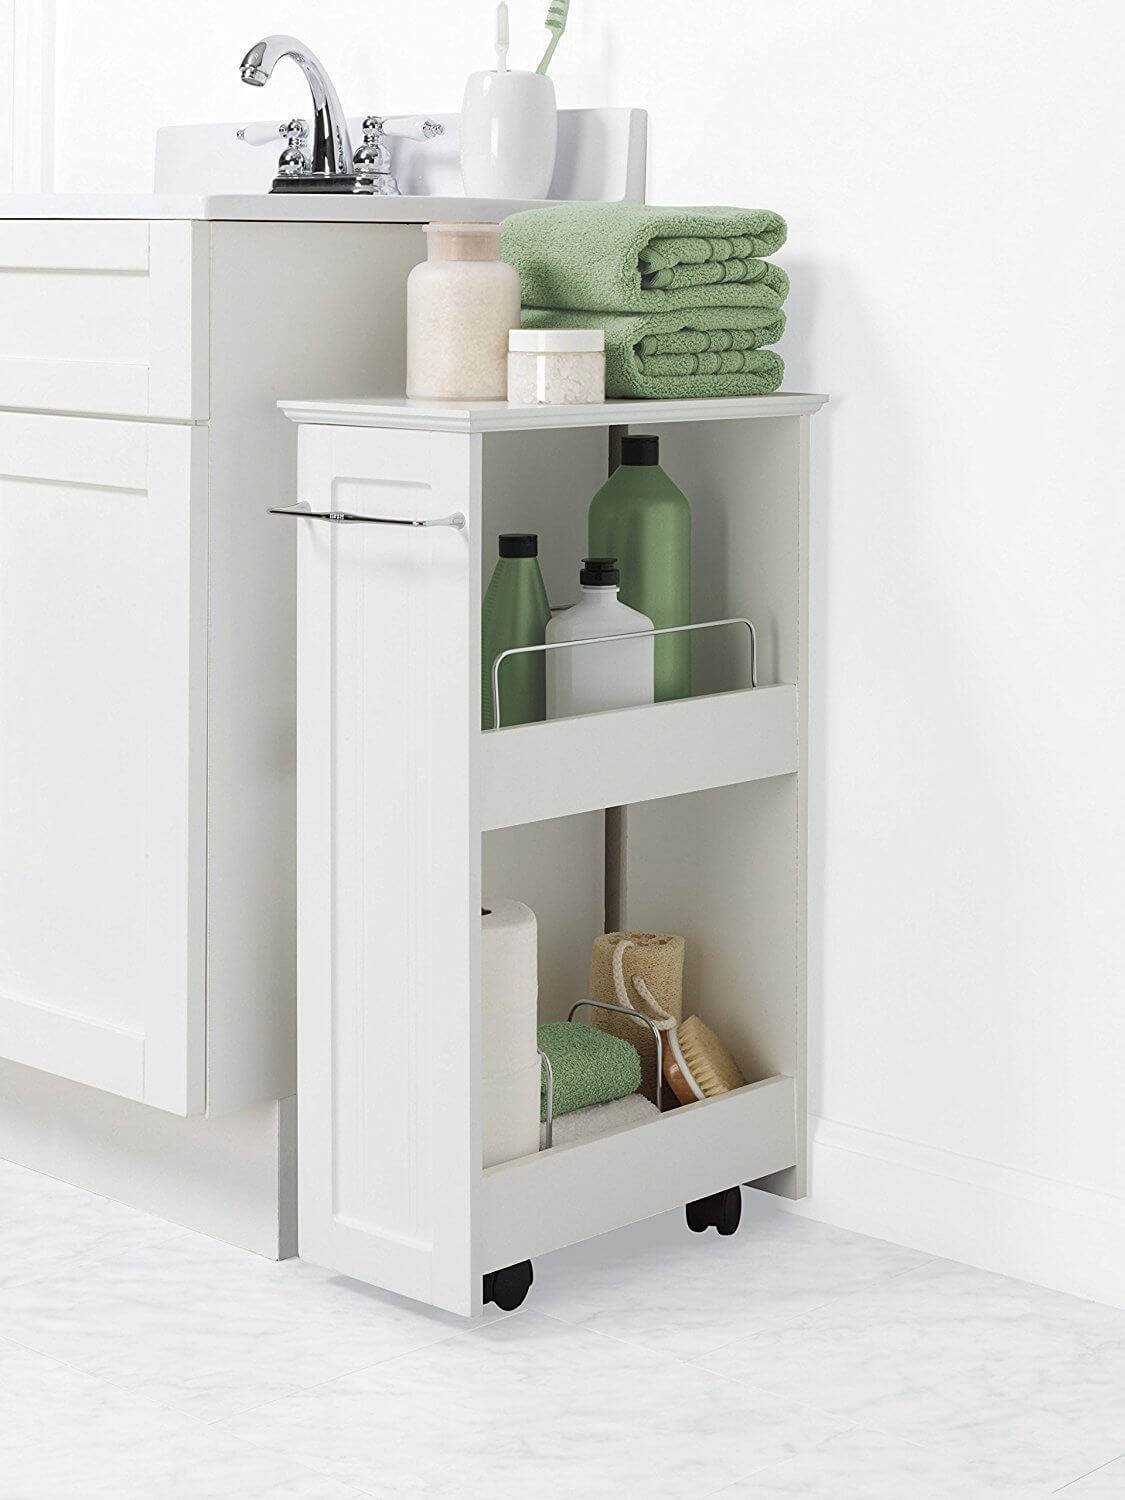 26 Best Bathroom Storage Cabinet Ideas For 2019 throughout proportions 1125 X 1500